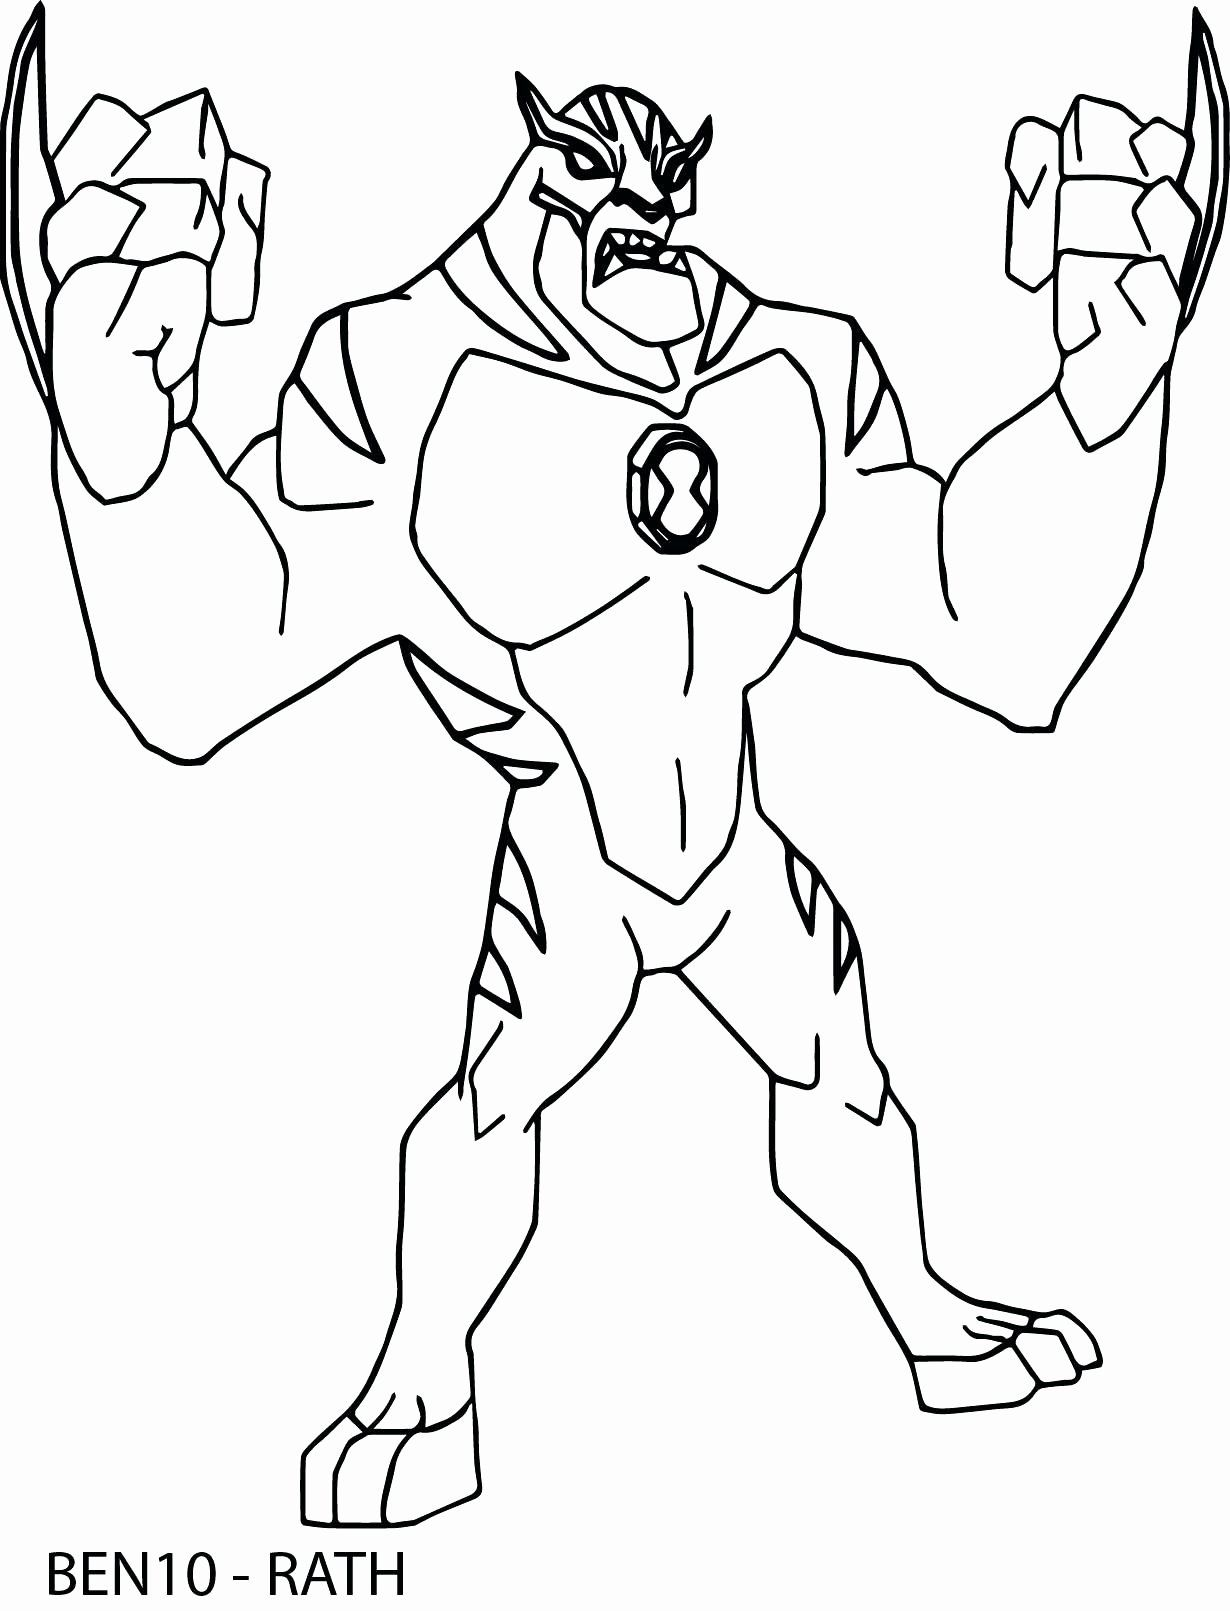 Ben 10 Coloring Page Lovely Coloring Pages Coloring Ben Games Free Alien Ten Book Coloring Pages Geometric Coloring Pages Planet Coloring Pages